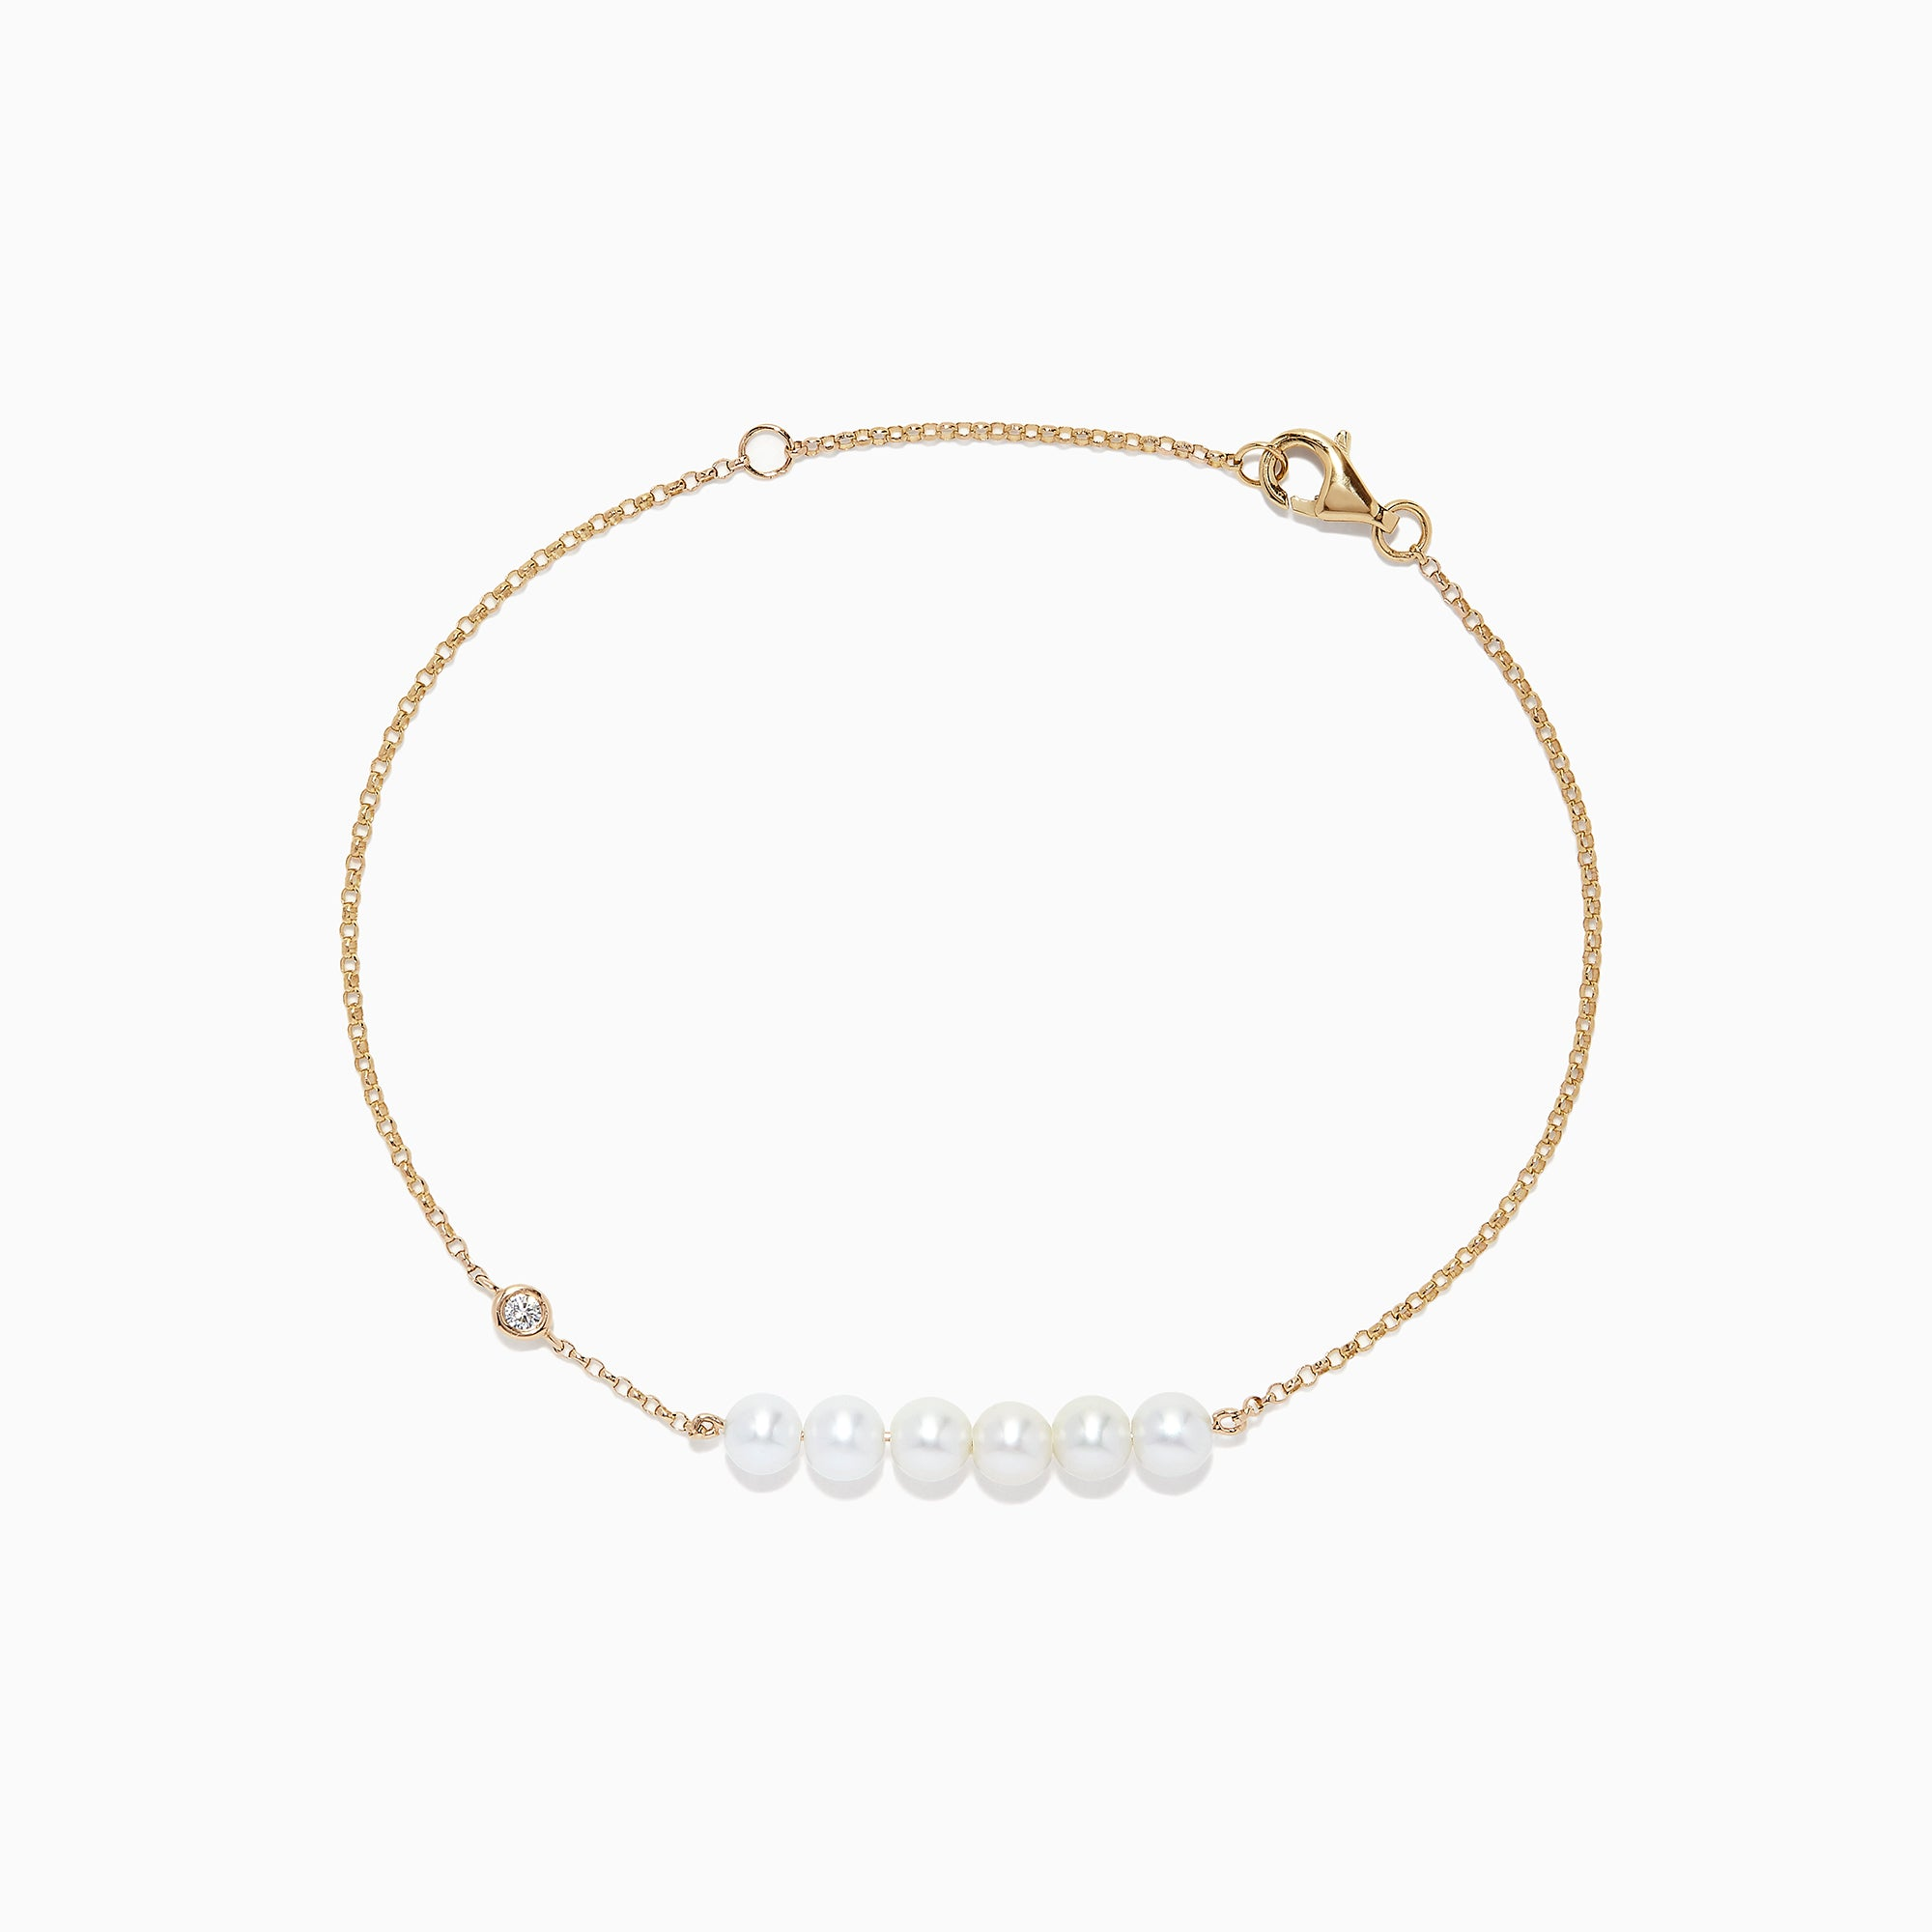 Effy 14K Gold Cultured Fresh Water Pearl and Diamond Bracelet, 0.04 TCW